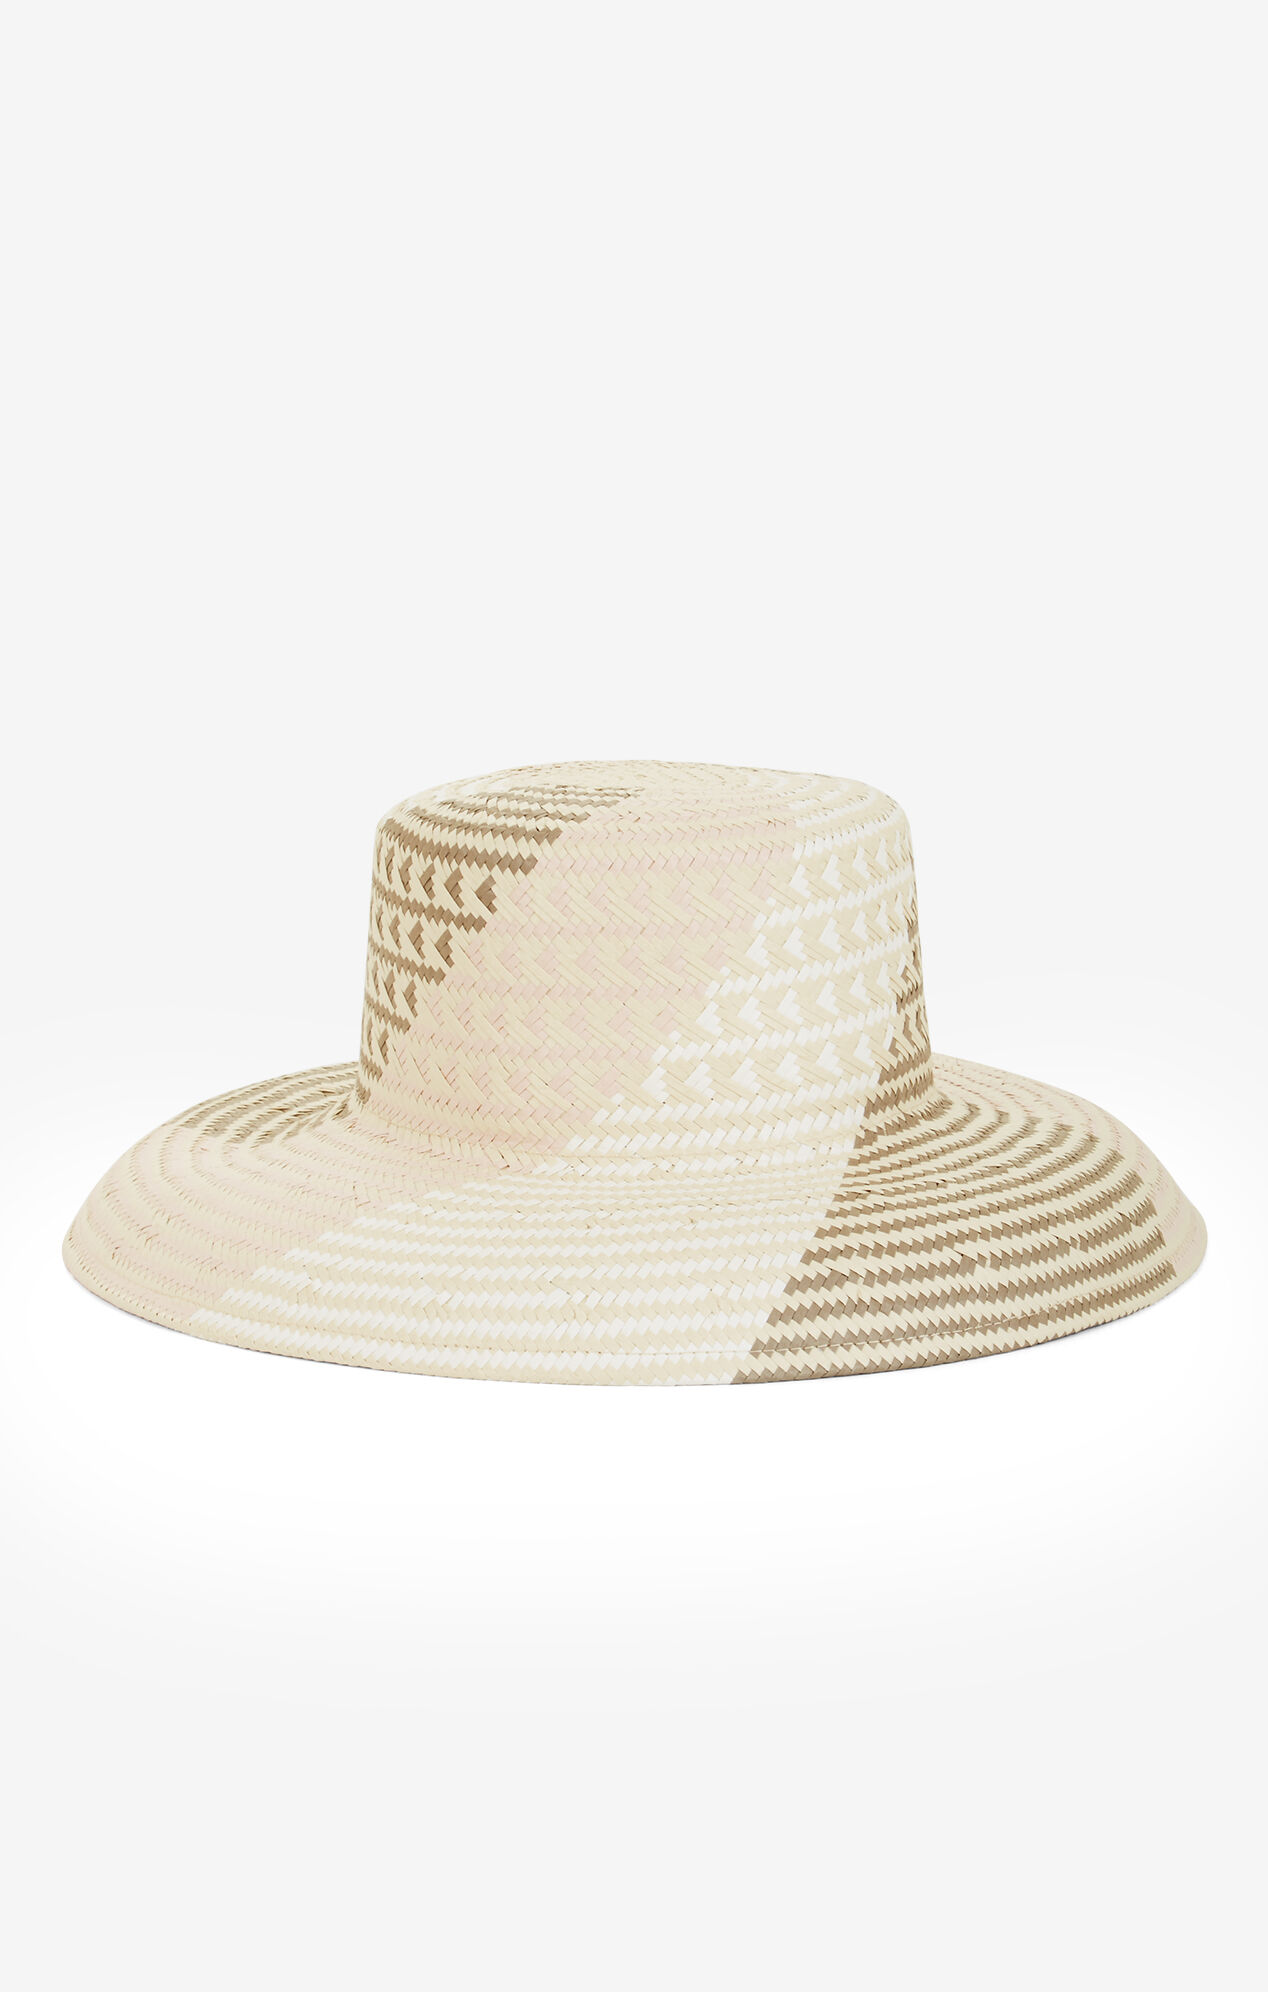 Oversized Straw Bucket Hat